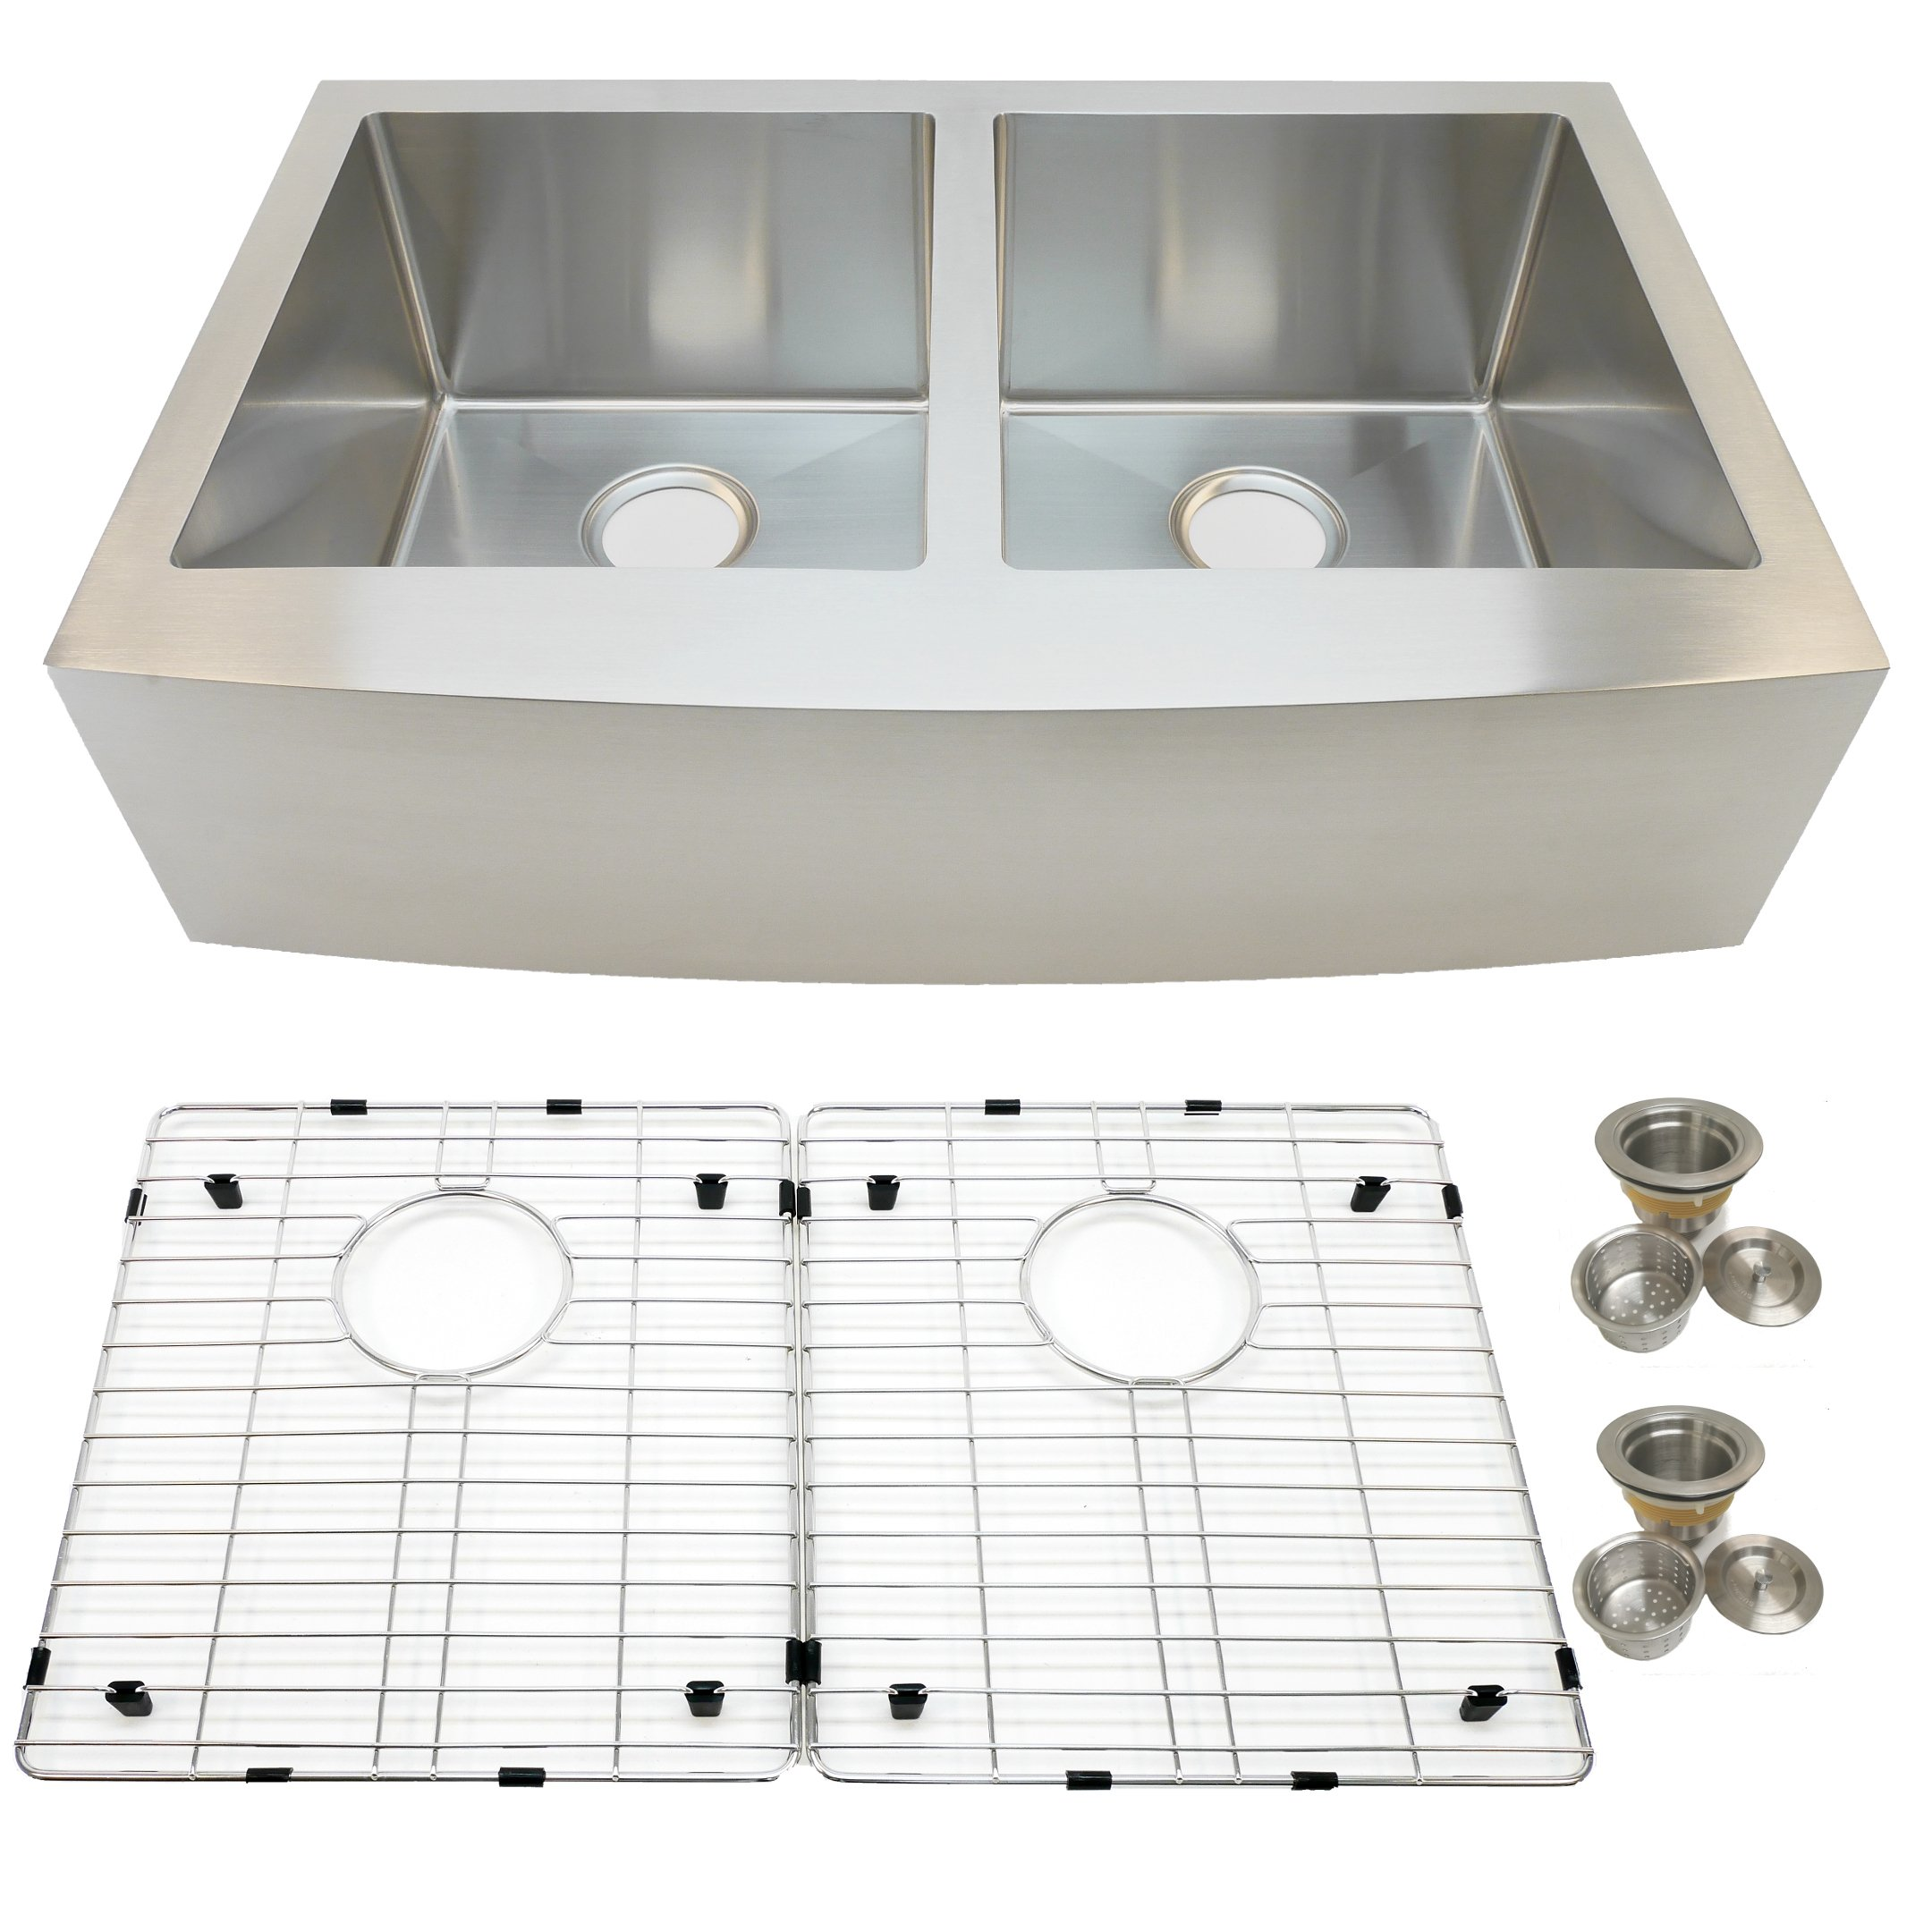 Auric Sinks 36'' Farmhouse Curved Front Apron Double Bowl Sink, 16 Gauge Stainless Steel, 50 / 50 Split, 6:SCAR-16-36-5050